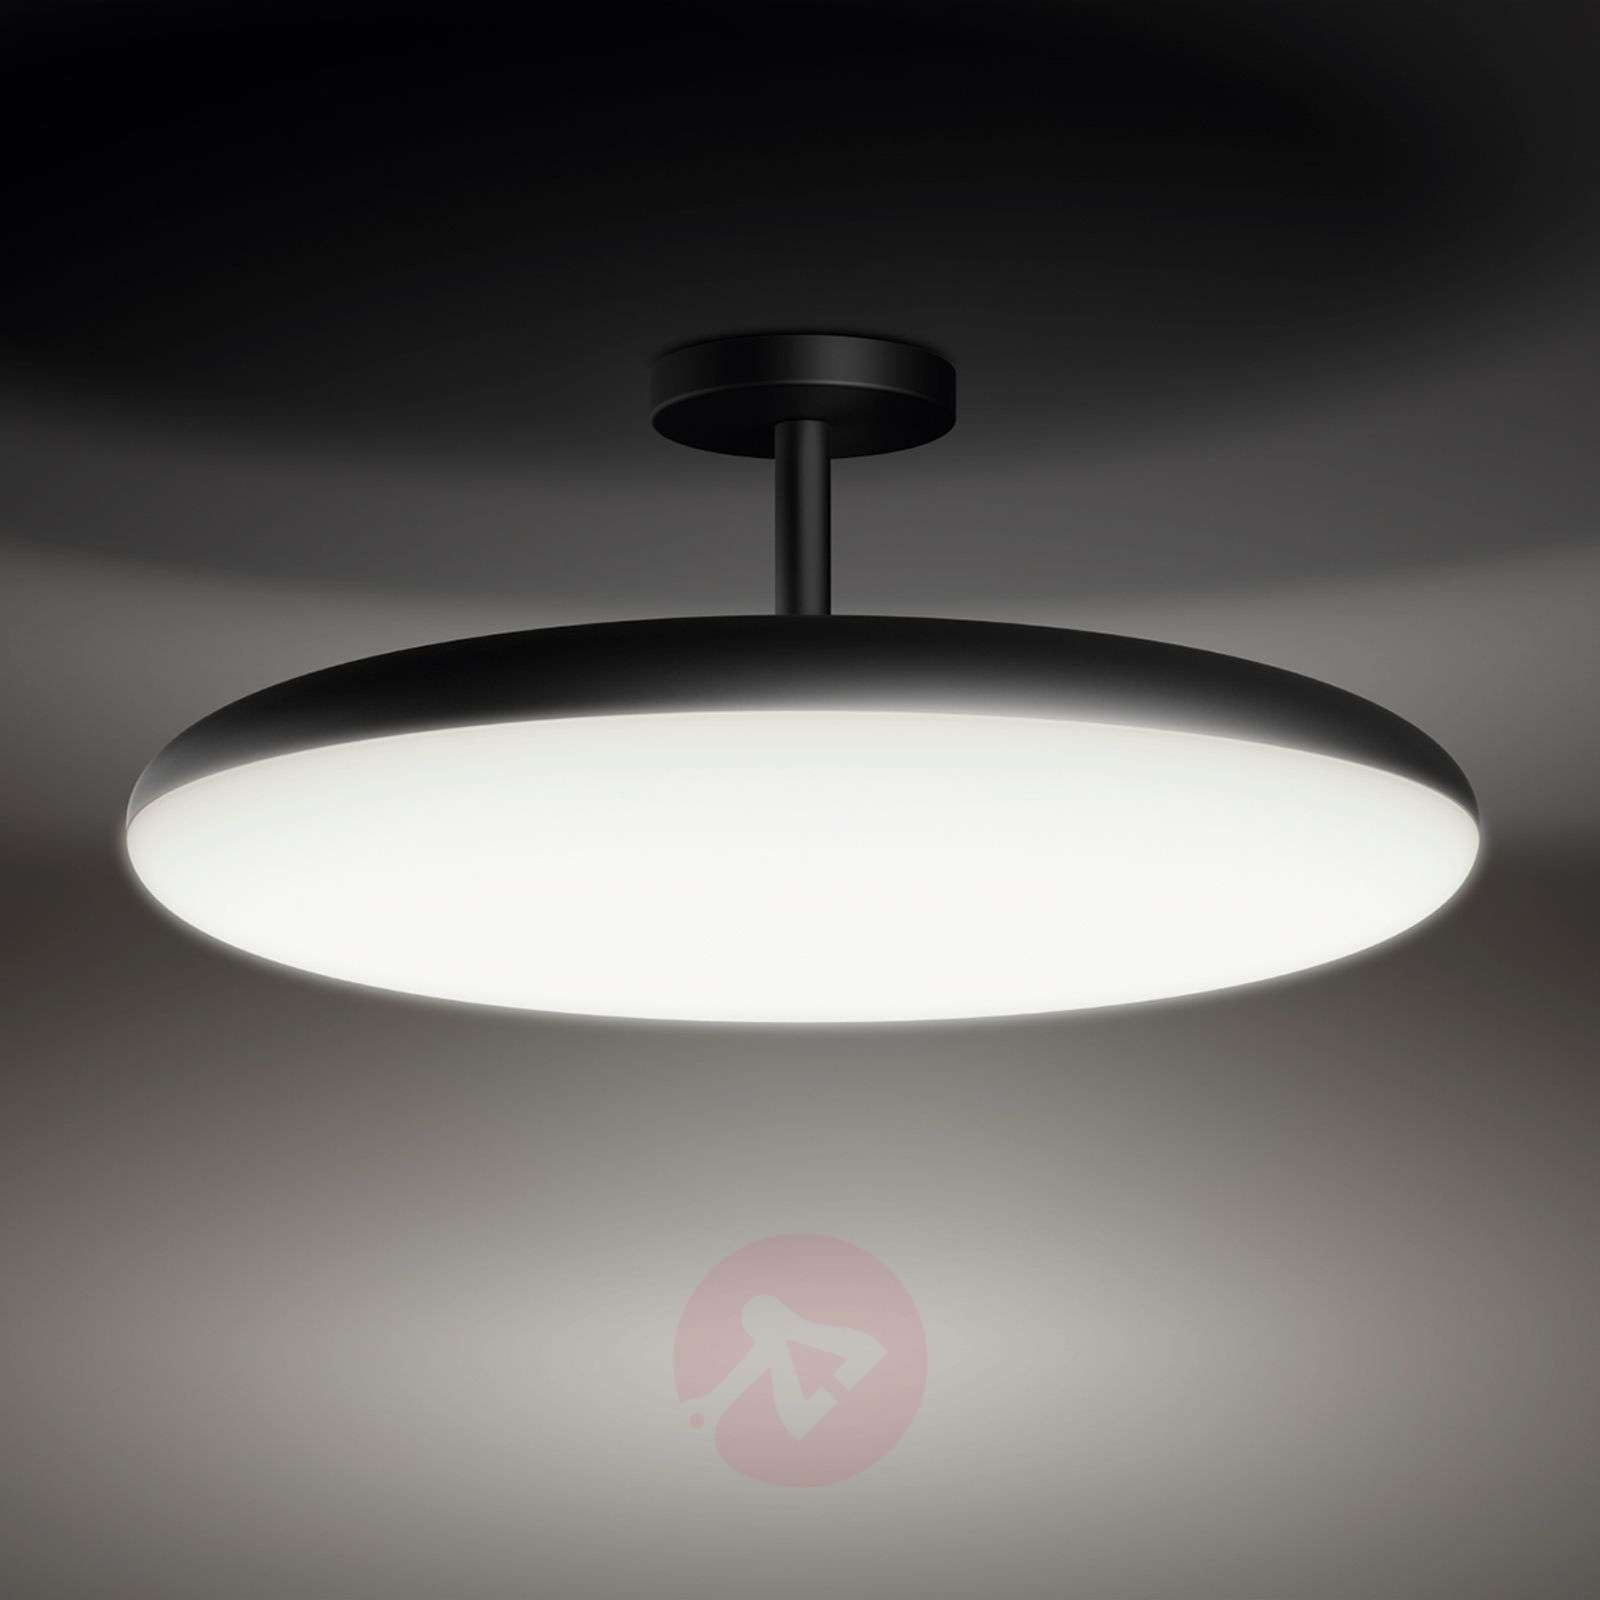 Controllable Philips Hue LED ceiling lamp Cher-7532057-01